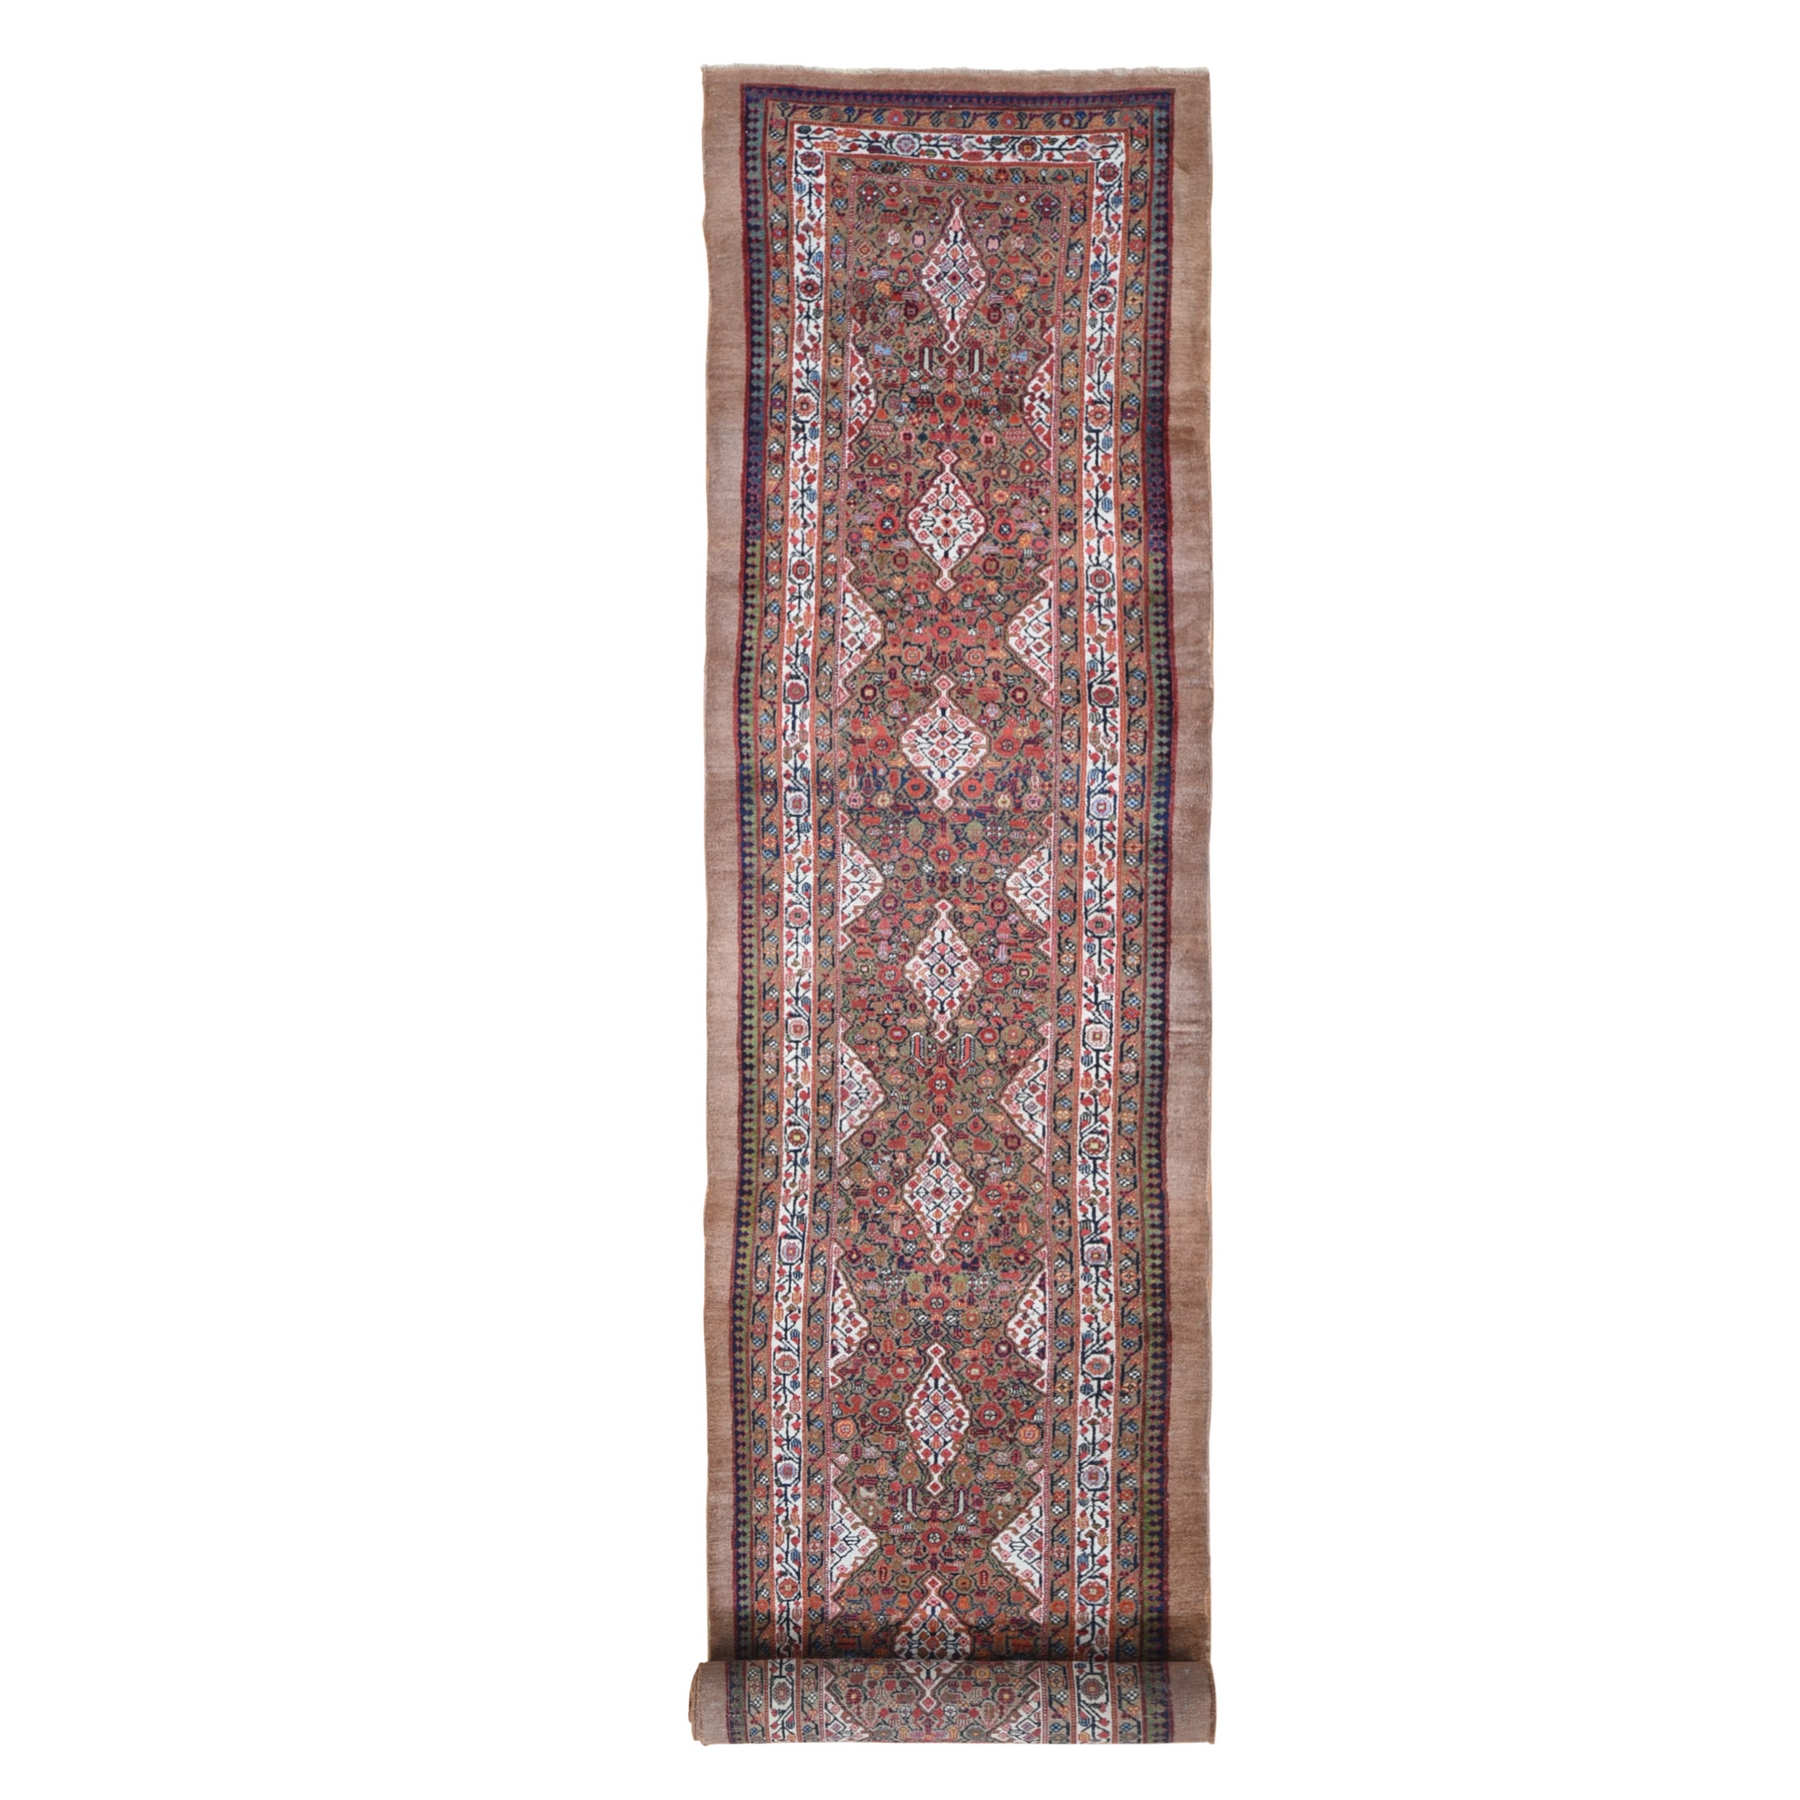 Antique Collection Hand Knotted Brown Rug No: 1133186